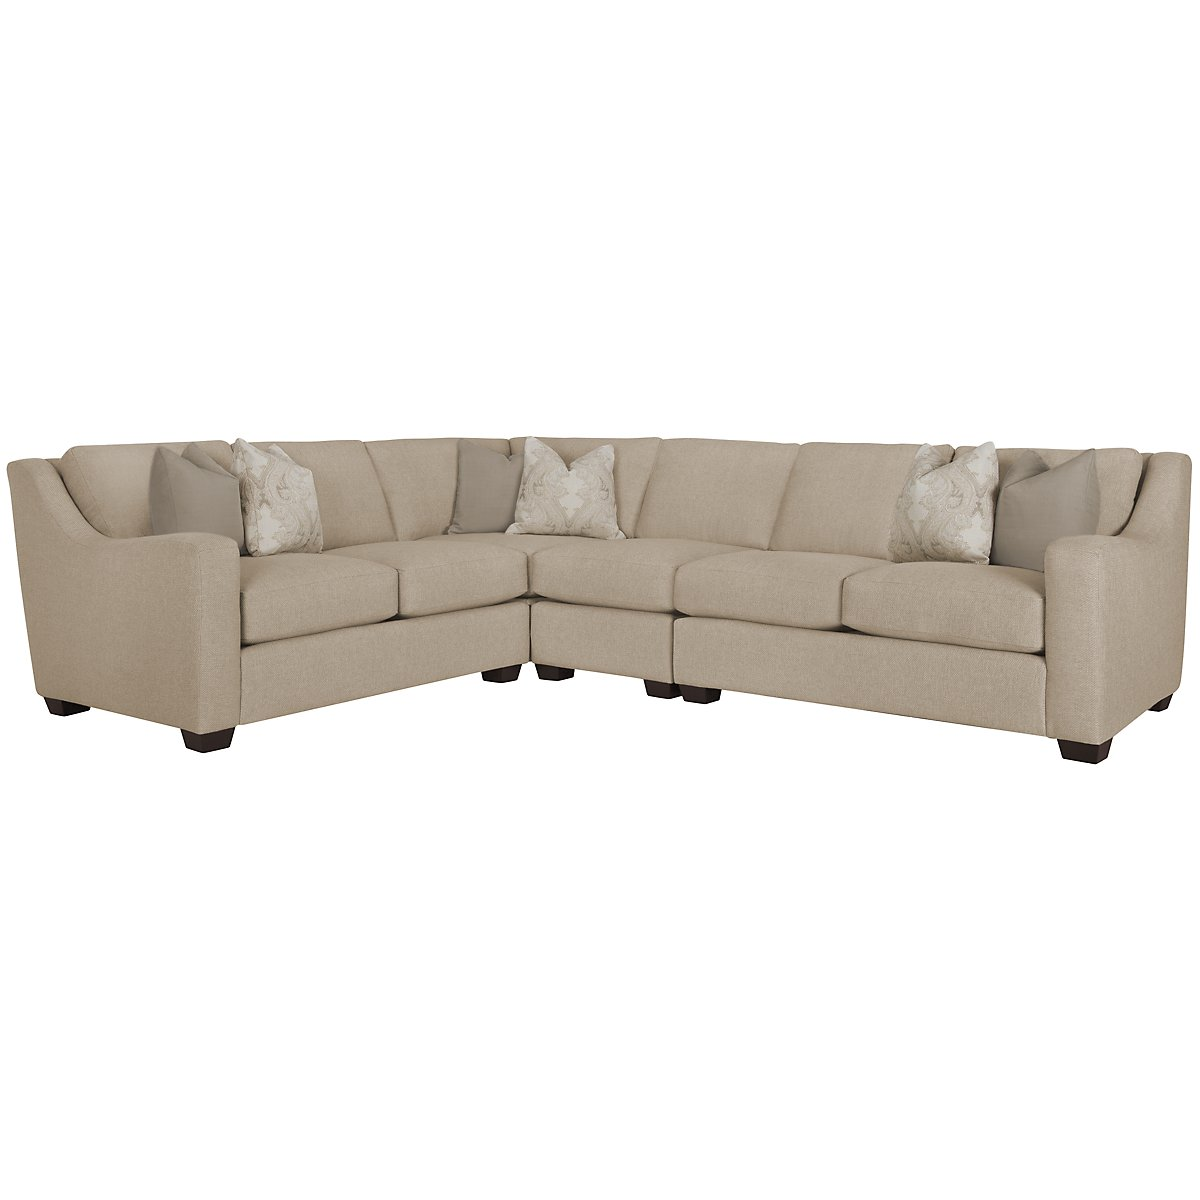 Lorna3 Beige Fabric Large Two-Arm Sectional